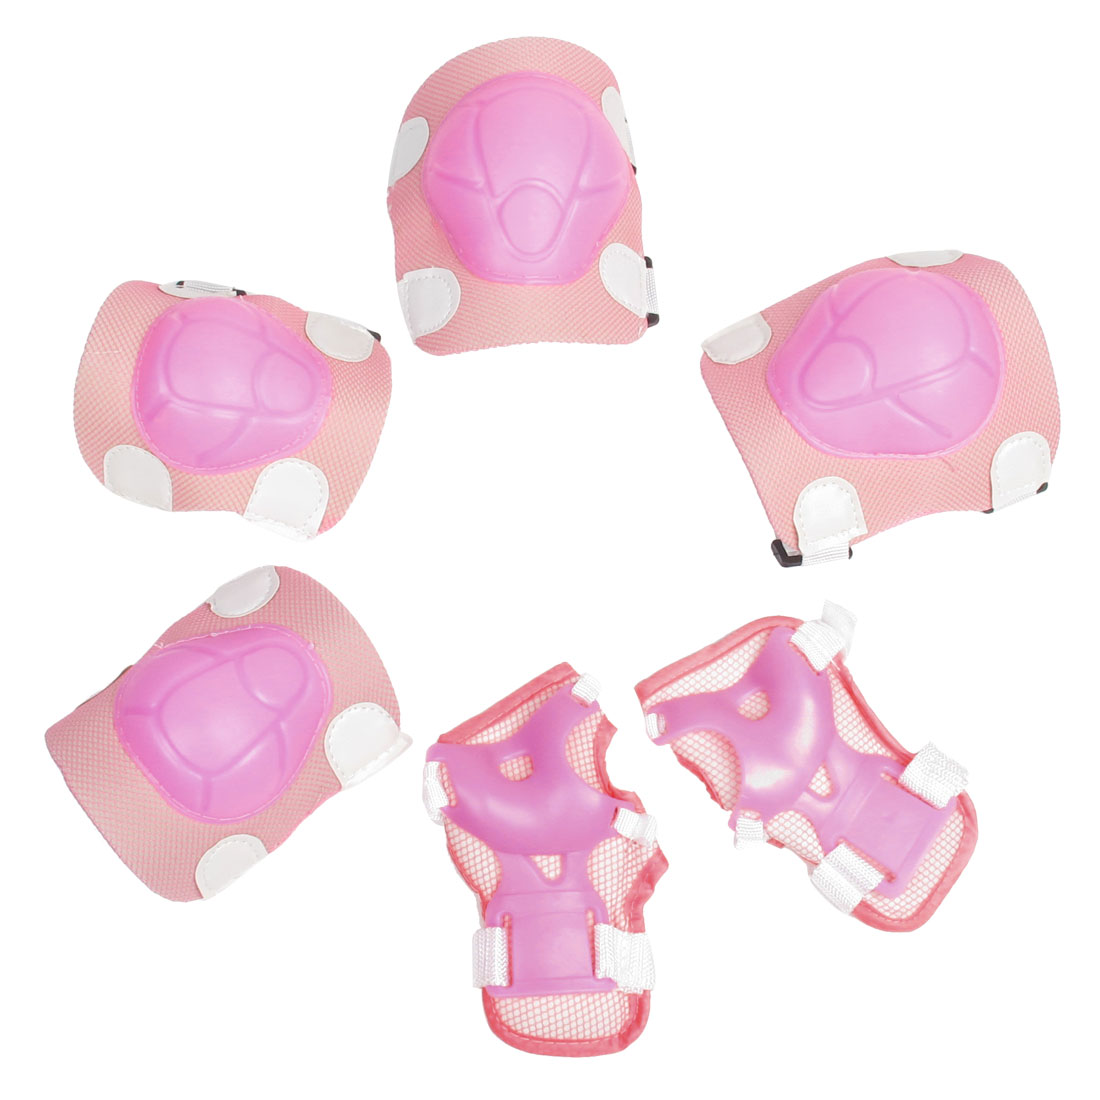 Set 6 in 1 Detachable Closure Knee Palm Elbow Guard Brace Pink White for Child